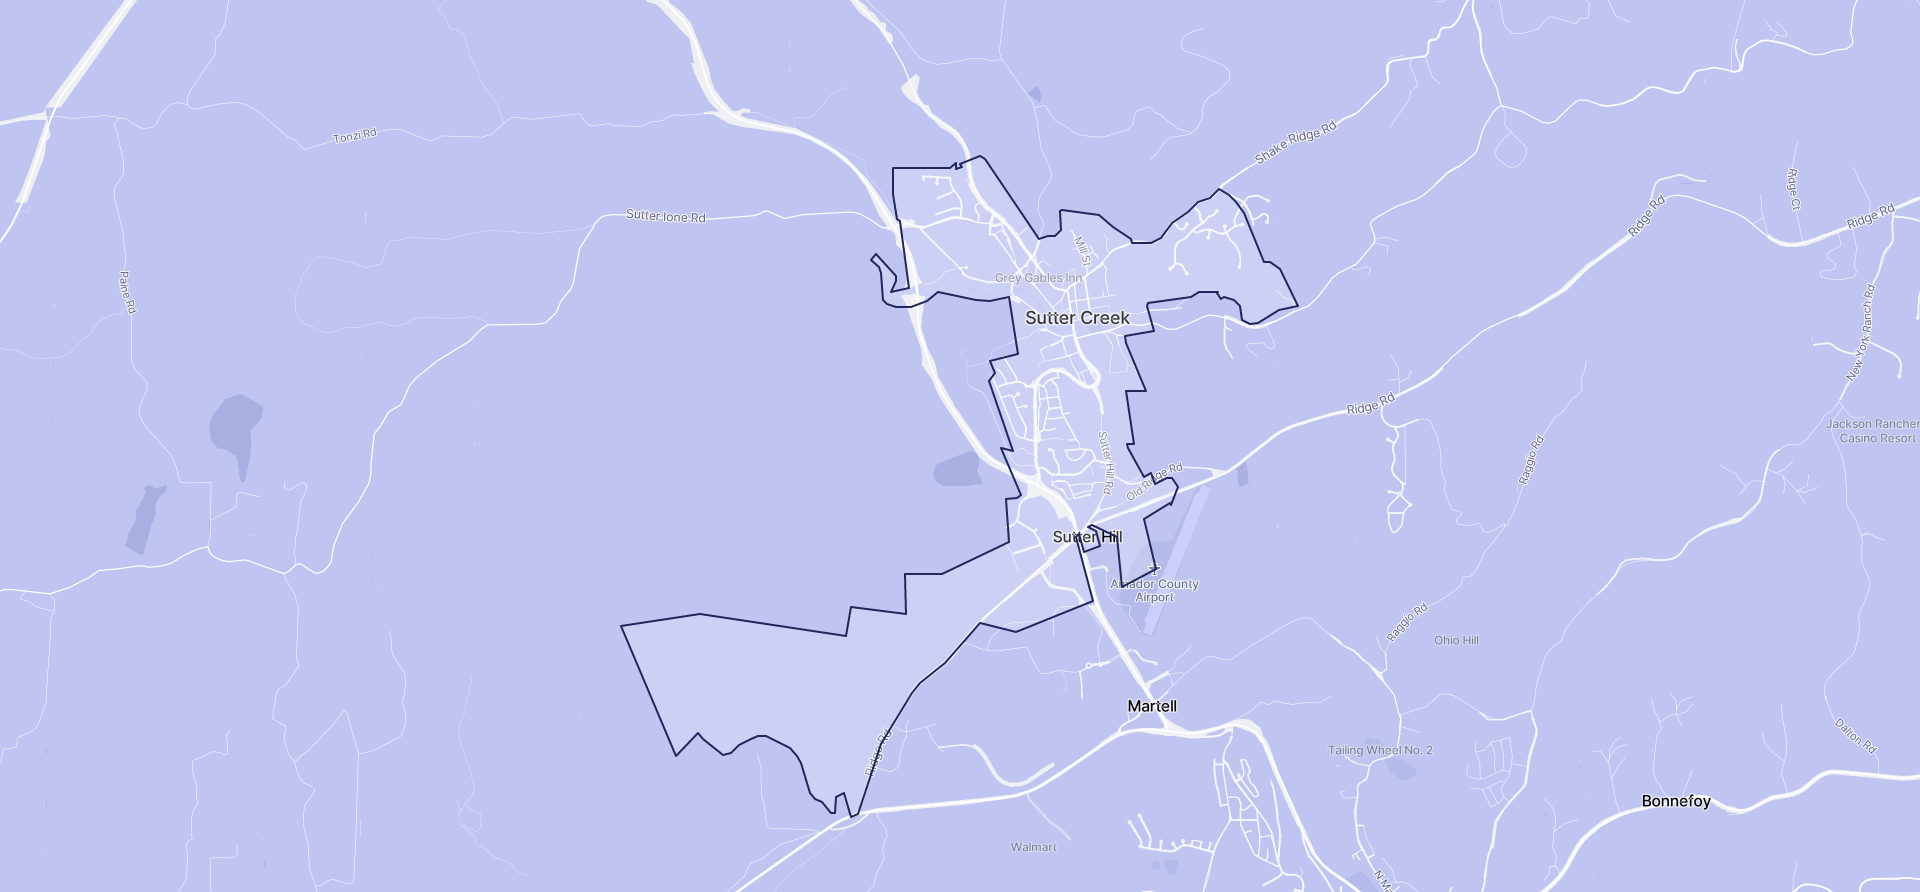 Image of Sutter Creek boundaries on a map.